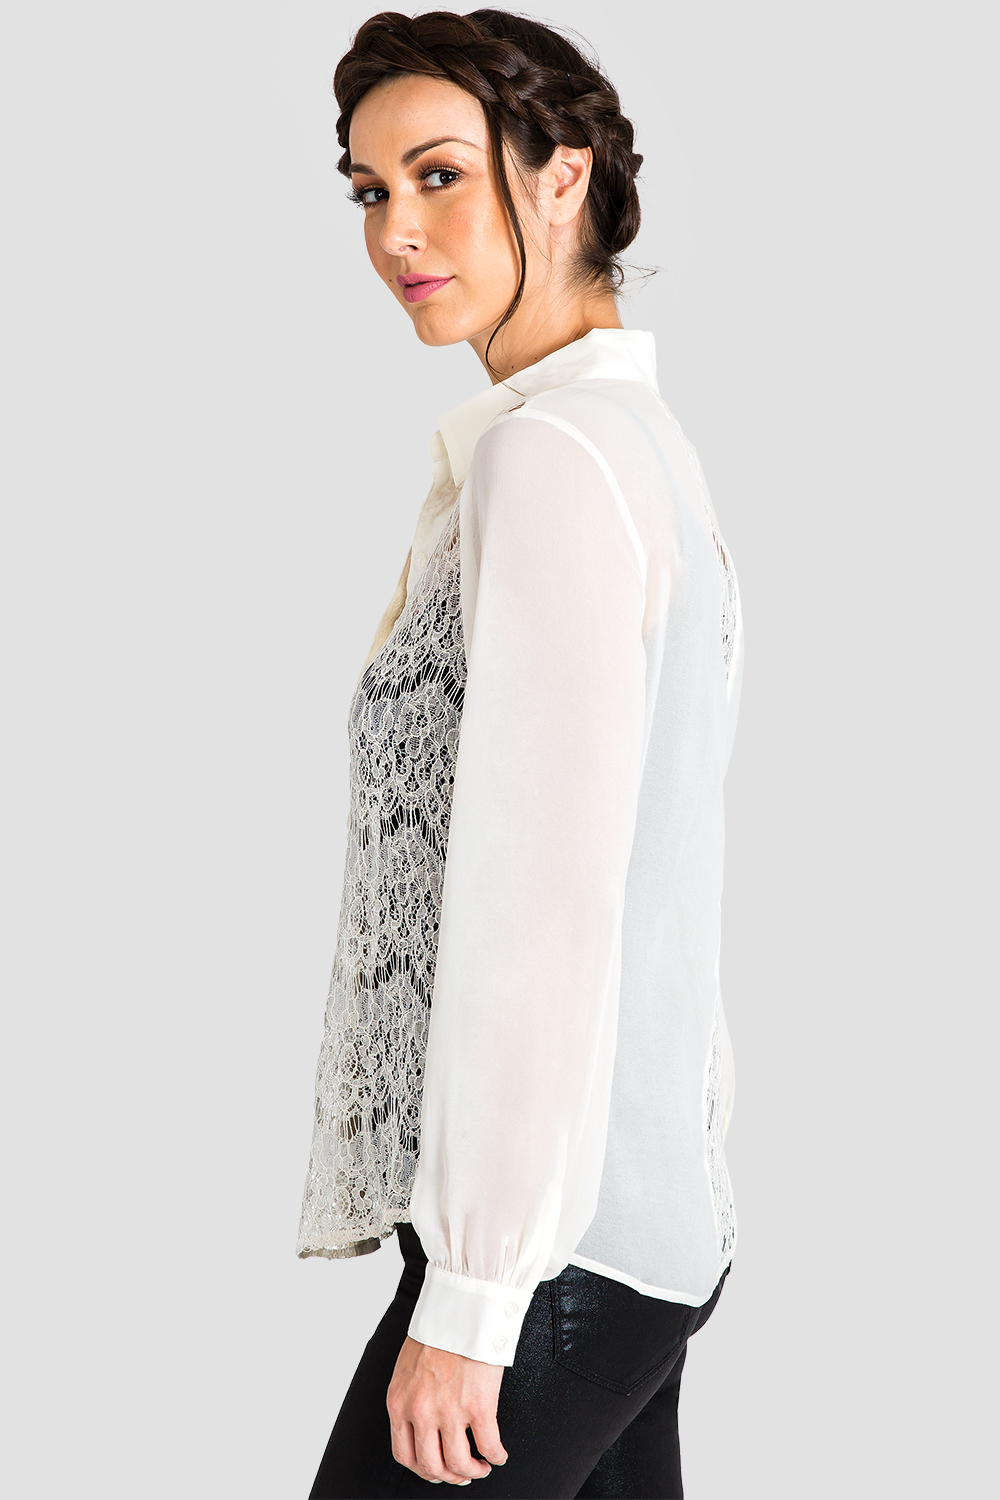 Women's Button-Up Collared Shirt White Lace